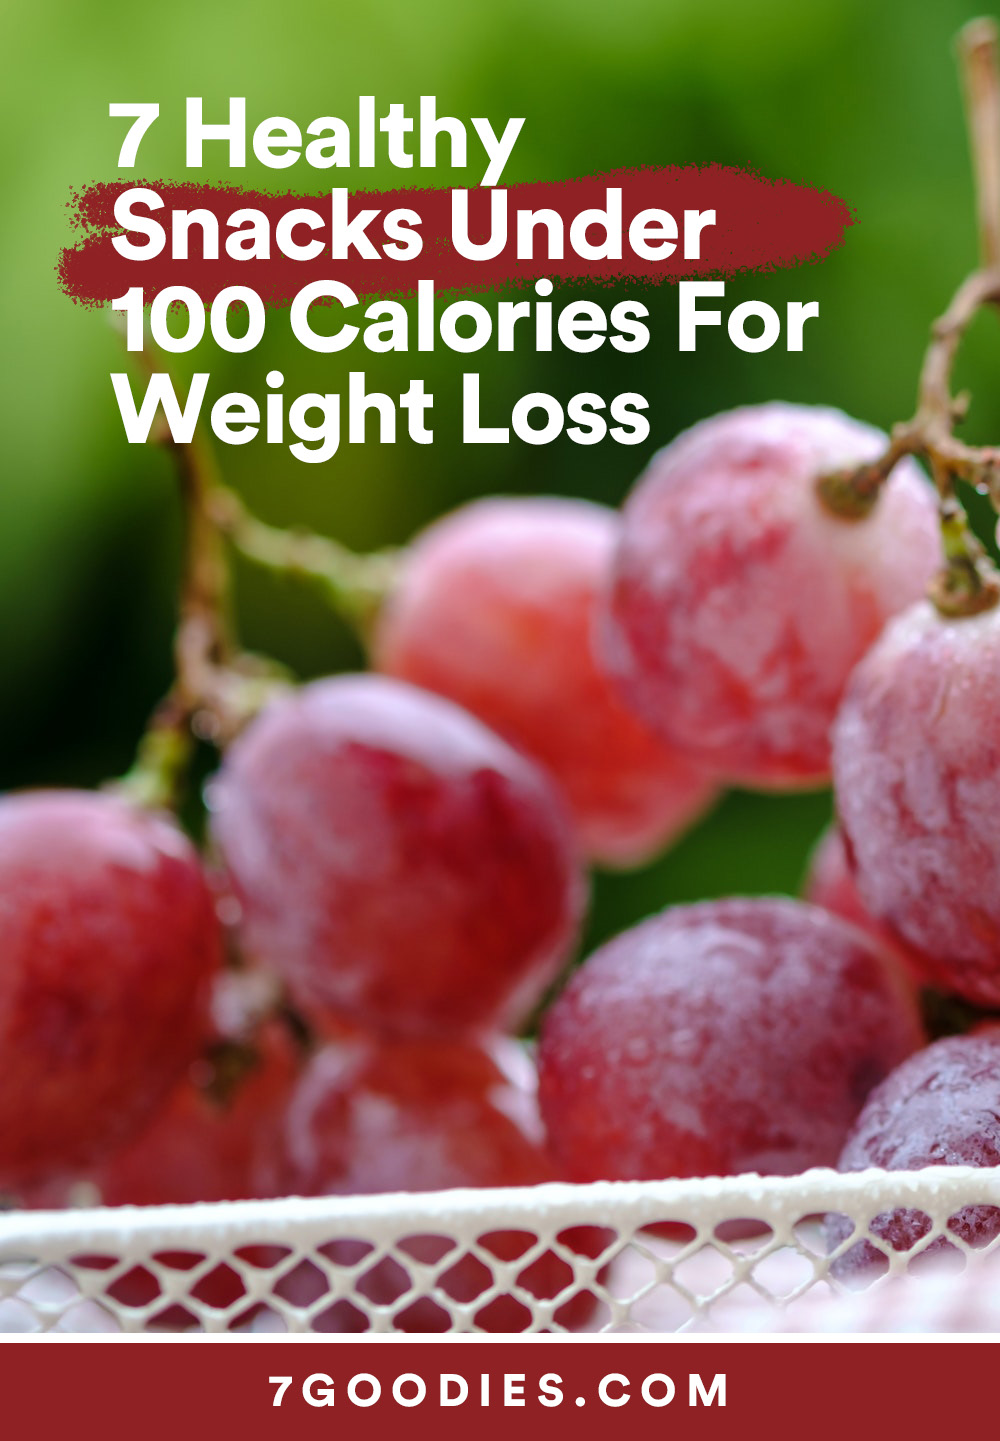 7 Healthy Snacks Under 100 Calories For Weight Loss